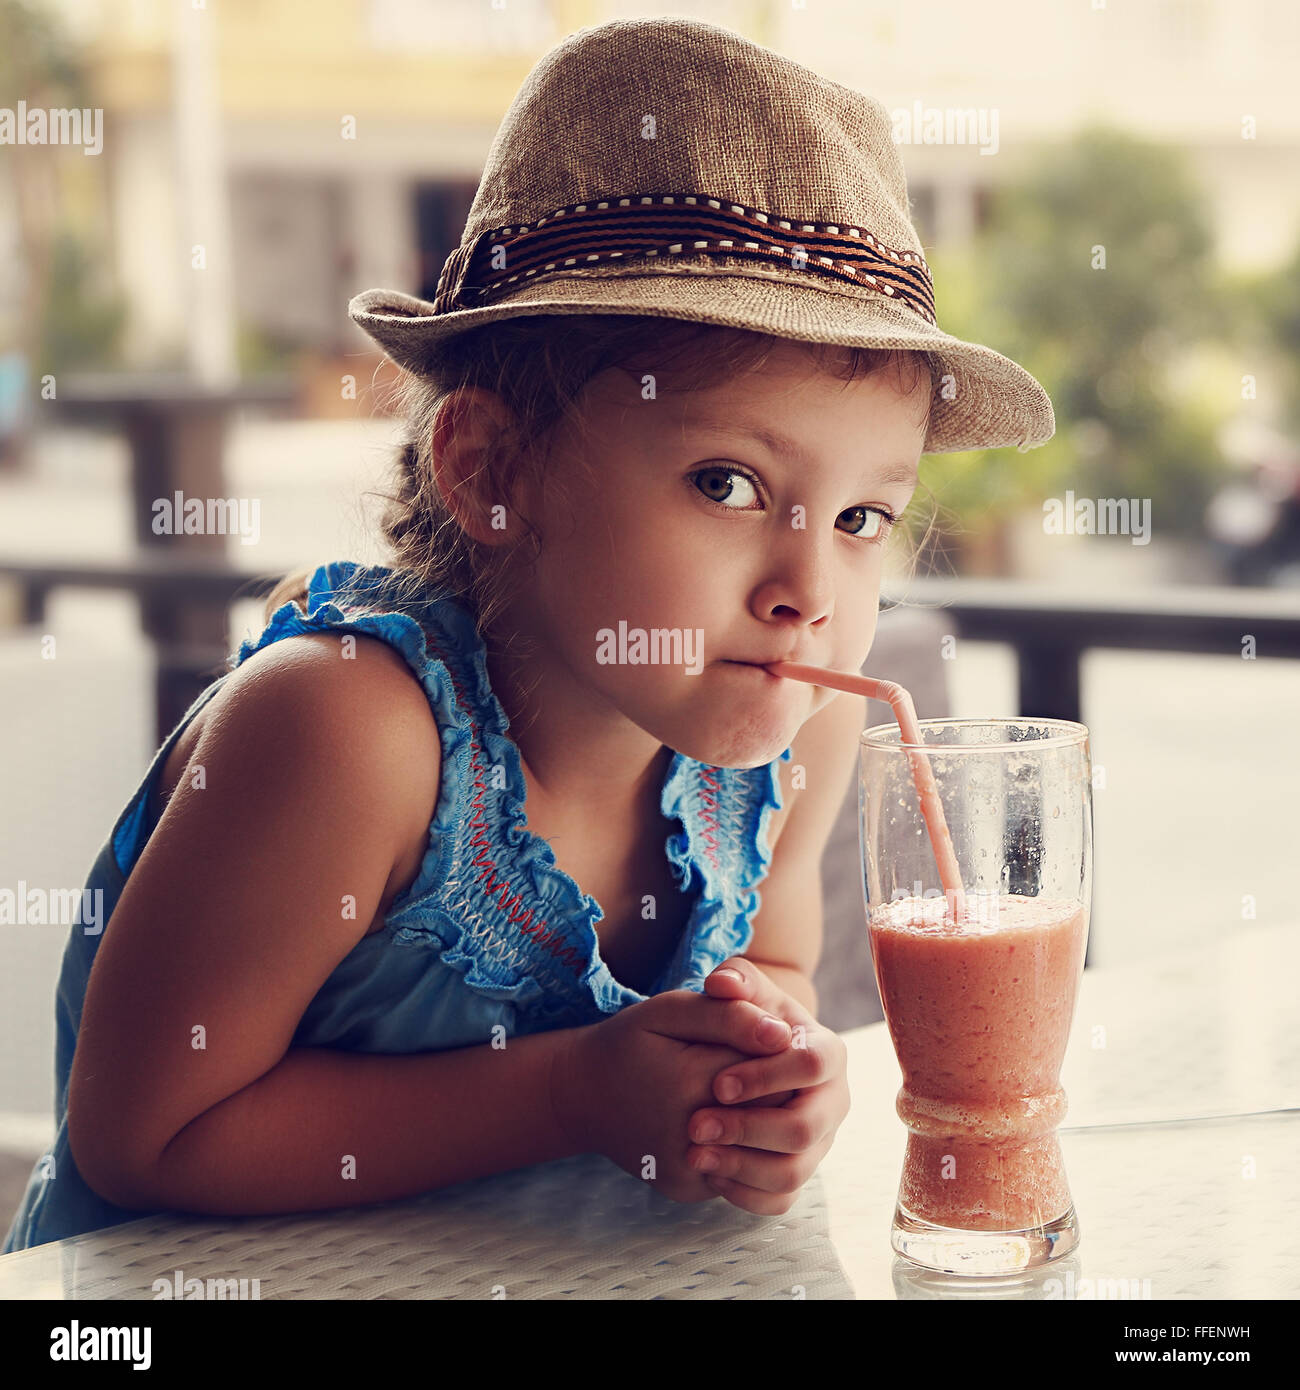 Curious fun cute kid girl in hat drinking tasty juice in summer street cafe. Closeup toned portrait - Stock Image